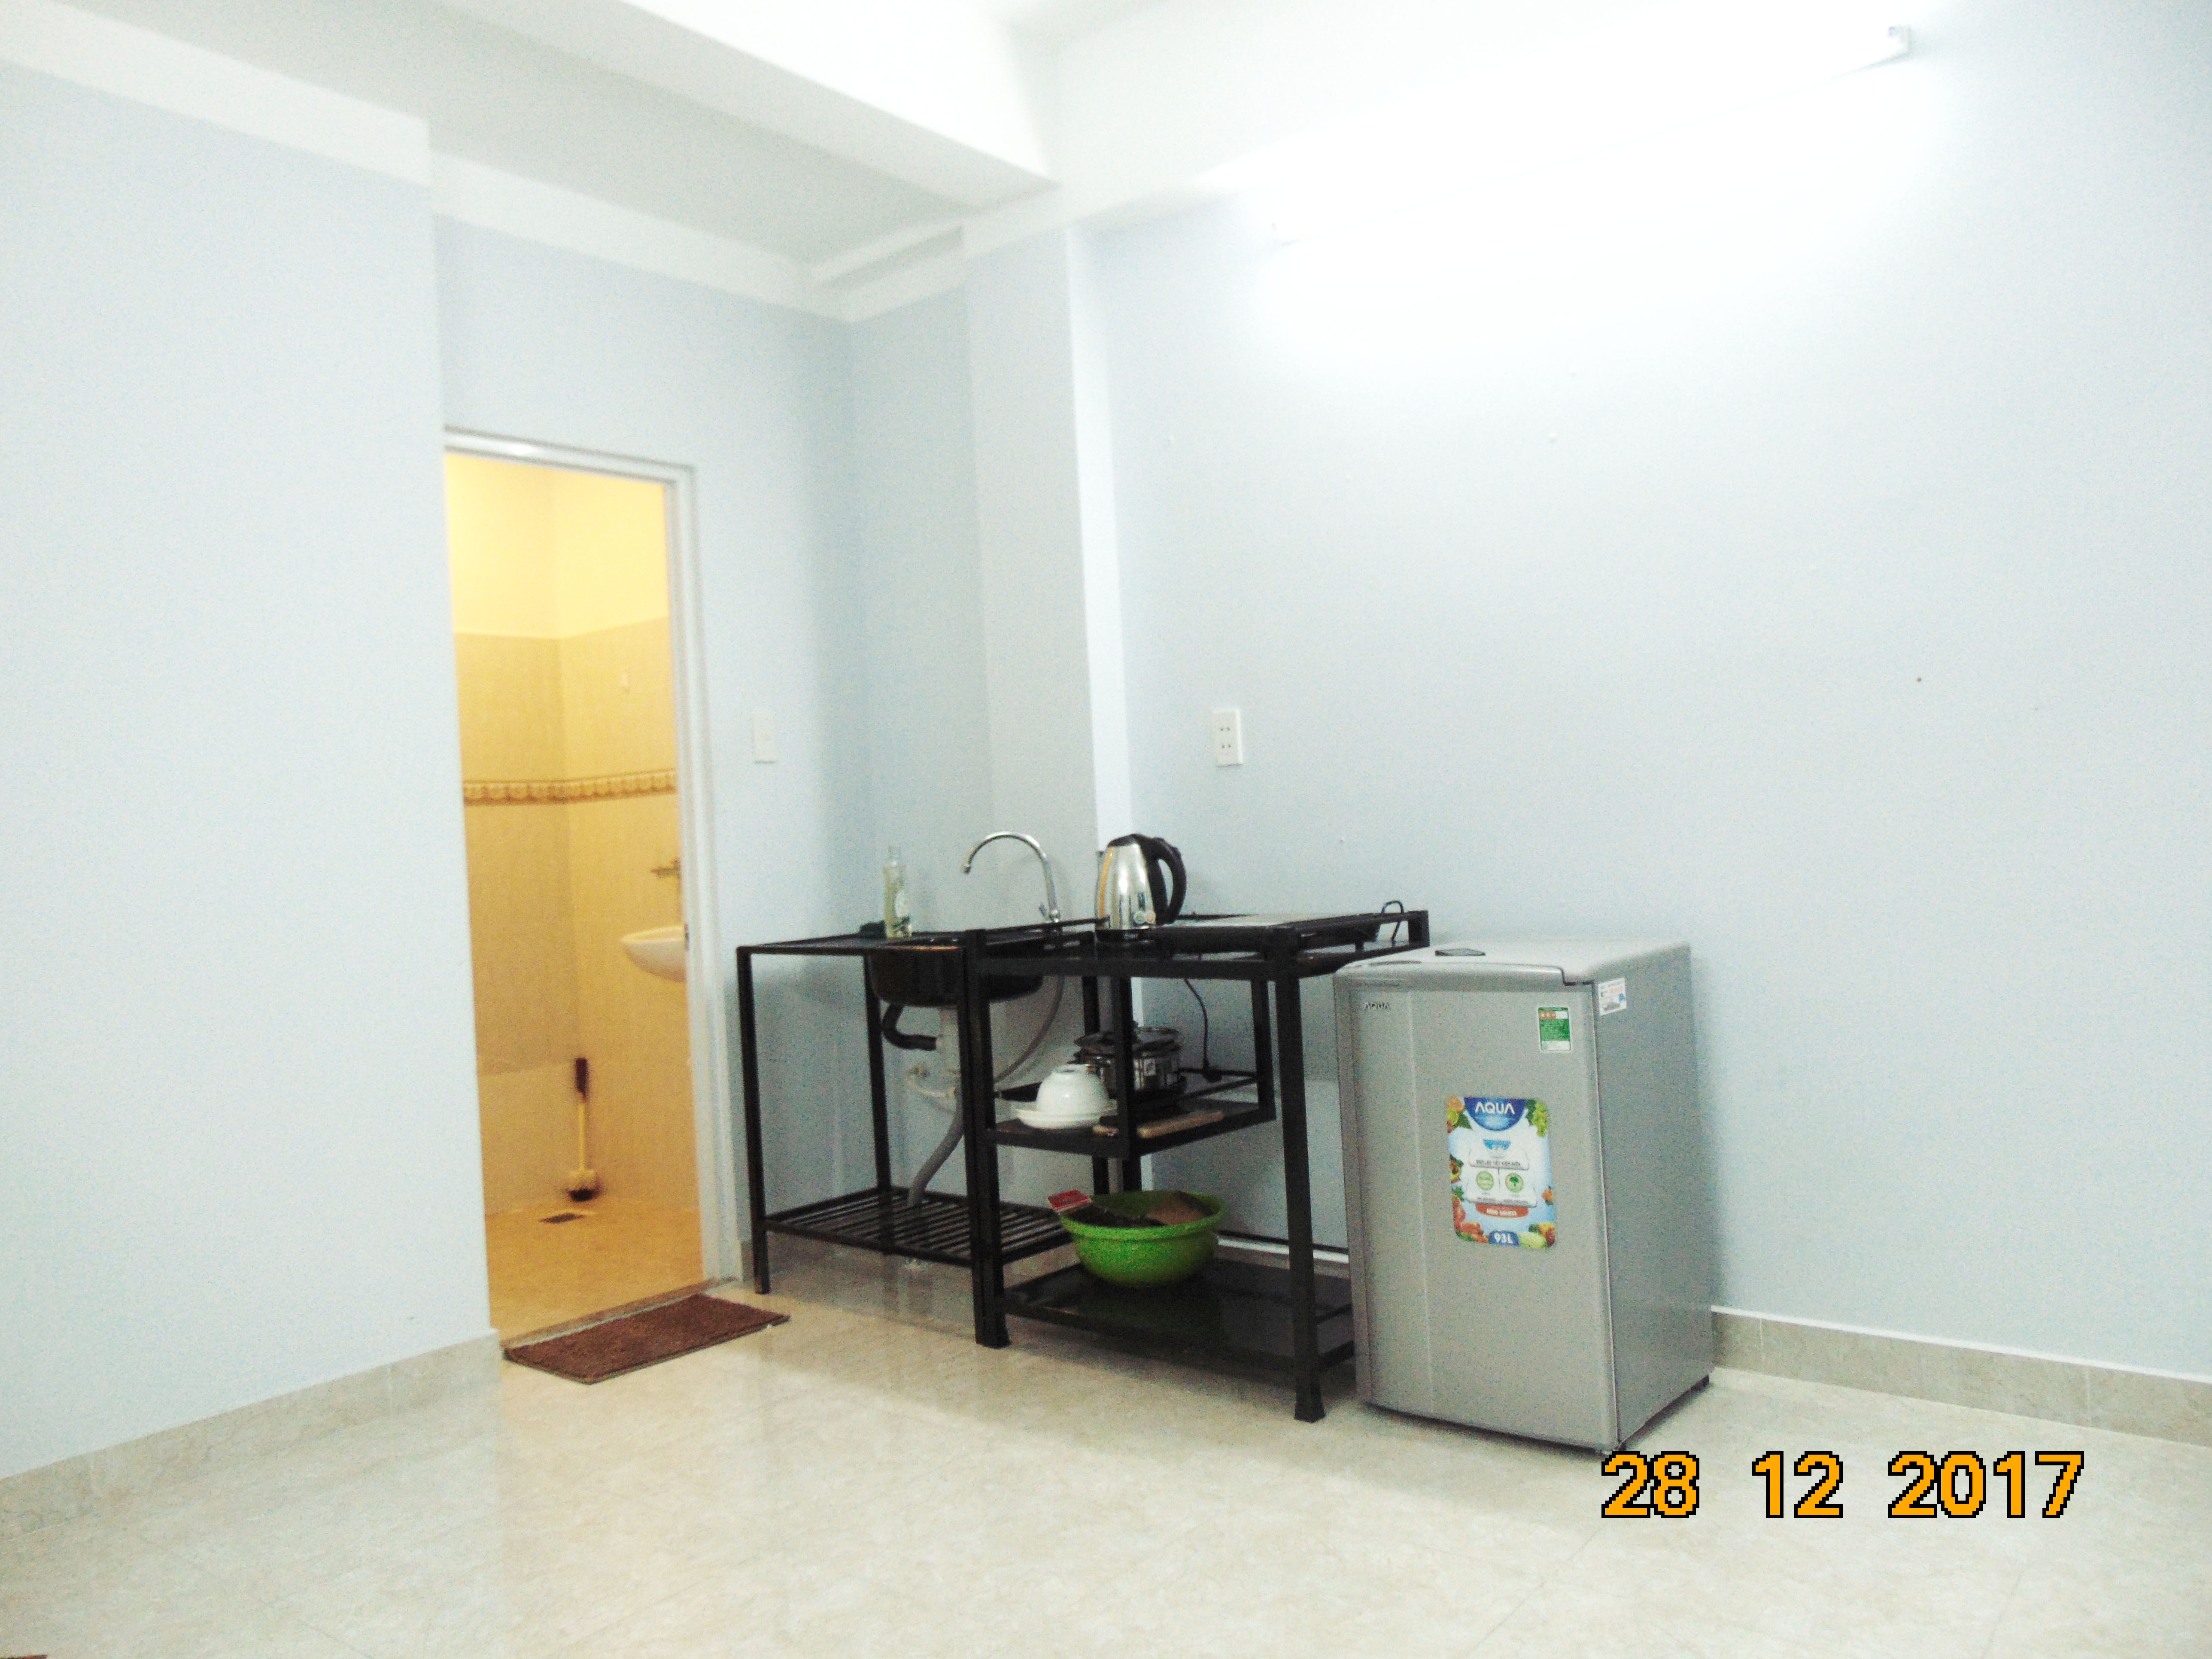 YT-2BR1-Fully furnished Studio Apartment, 2 bedrooms, Cozy ...